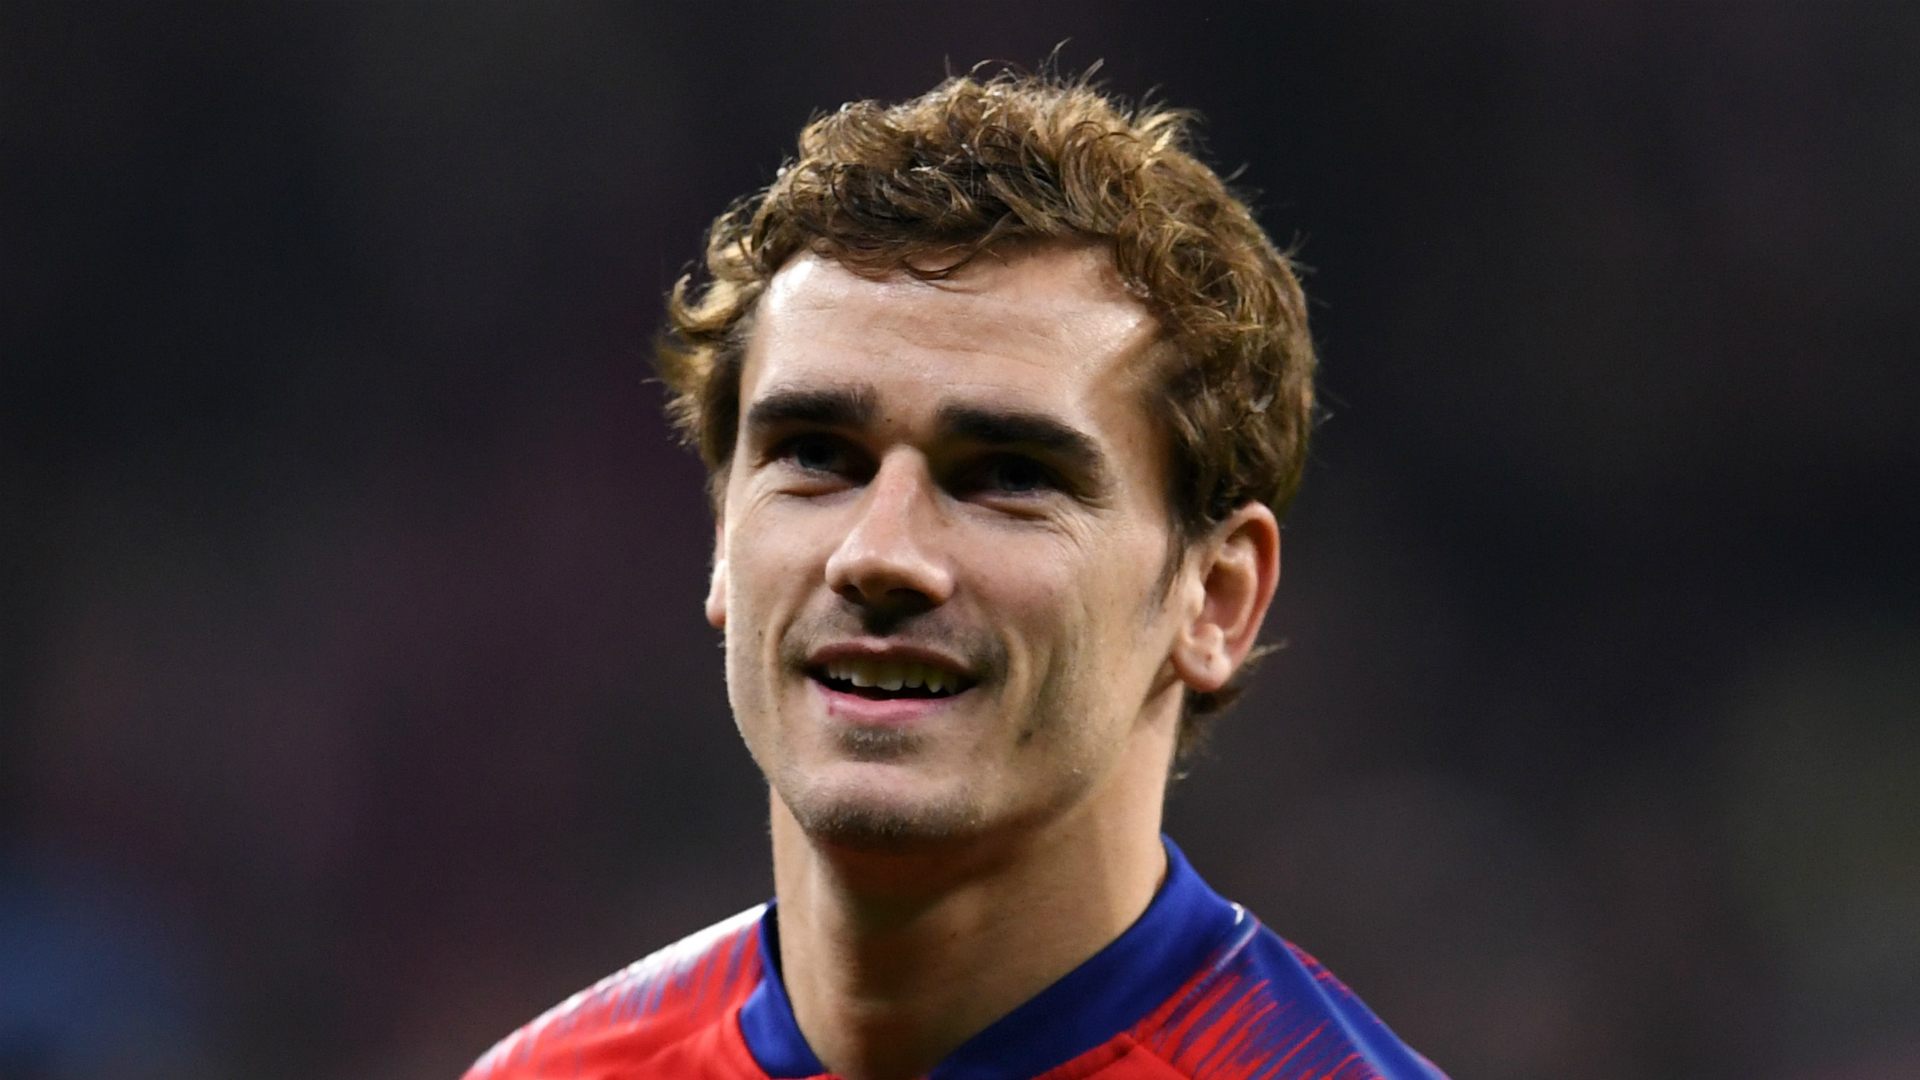 Griezmann: What else do I have to do to win Ballon d'Or?